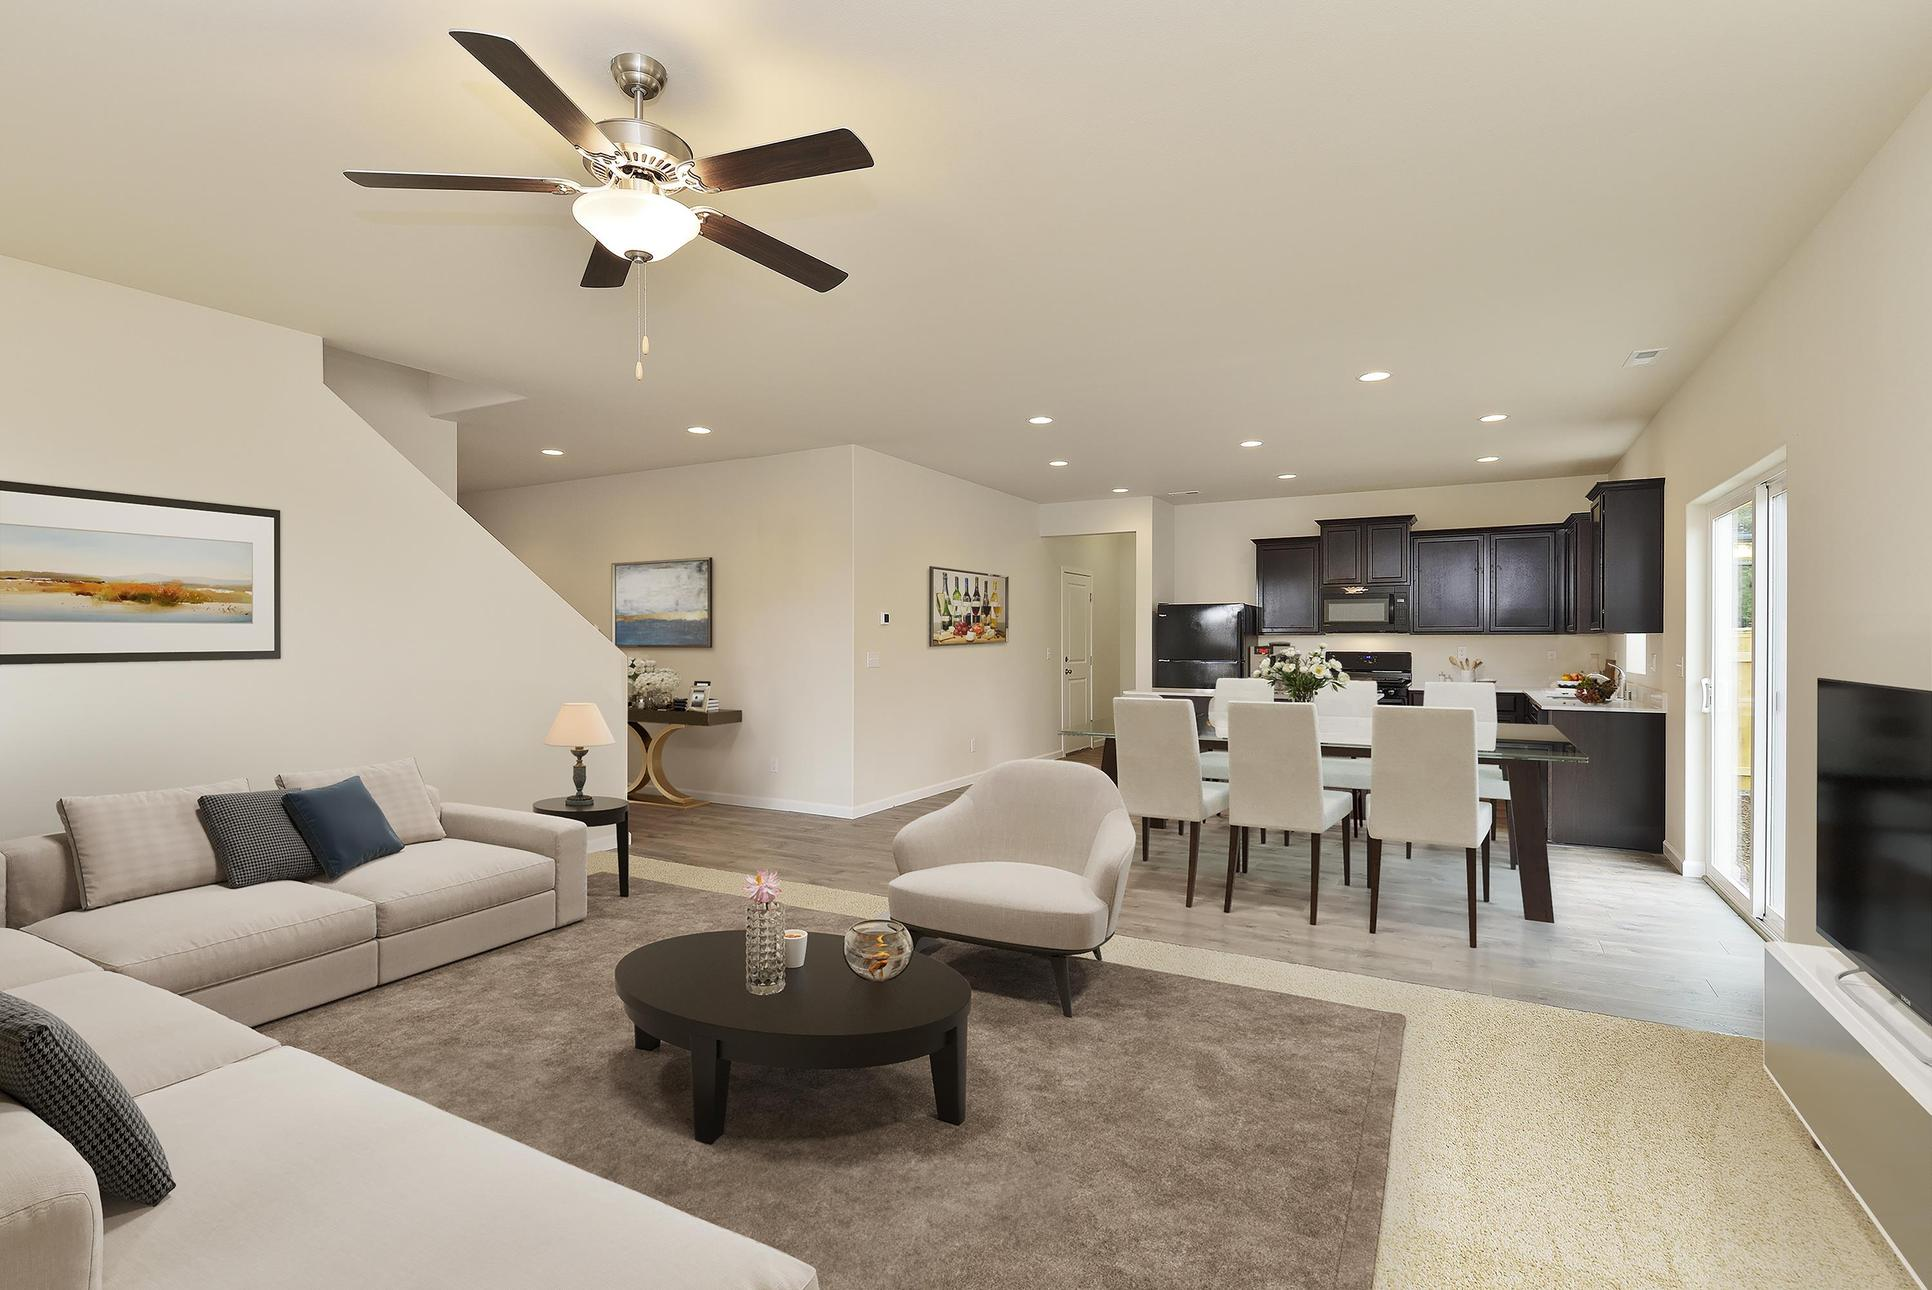 Skyridge Estates by LGI Homes:Skyridge Estates by LGI Homes